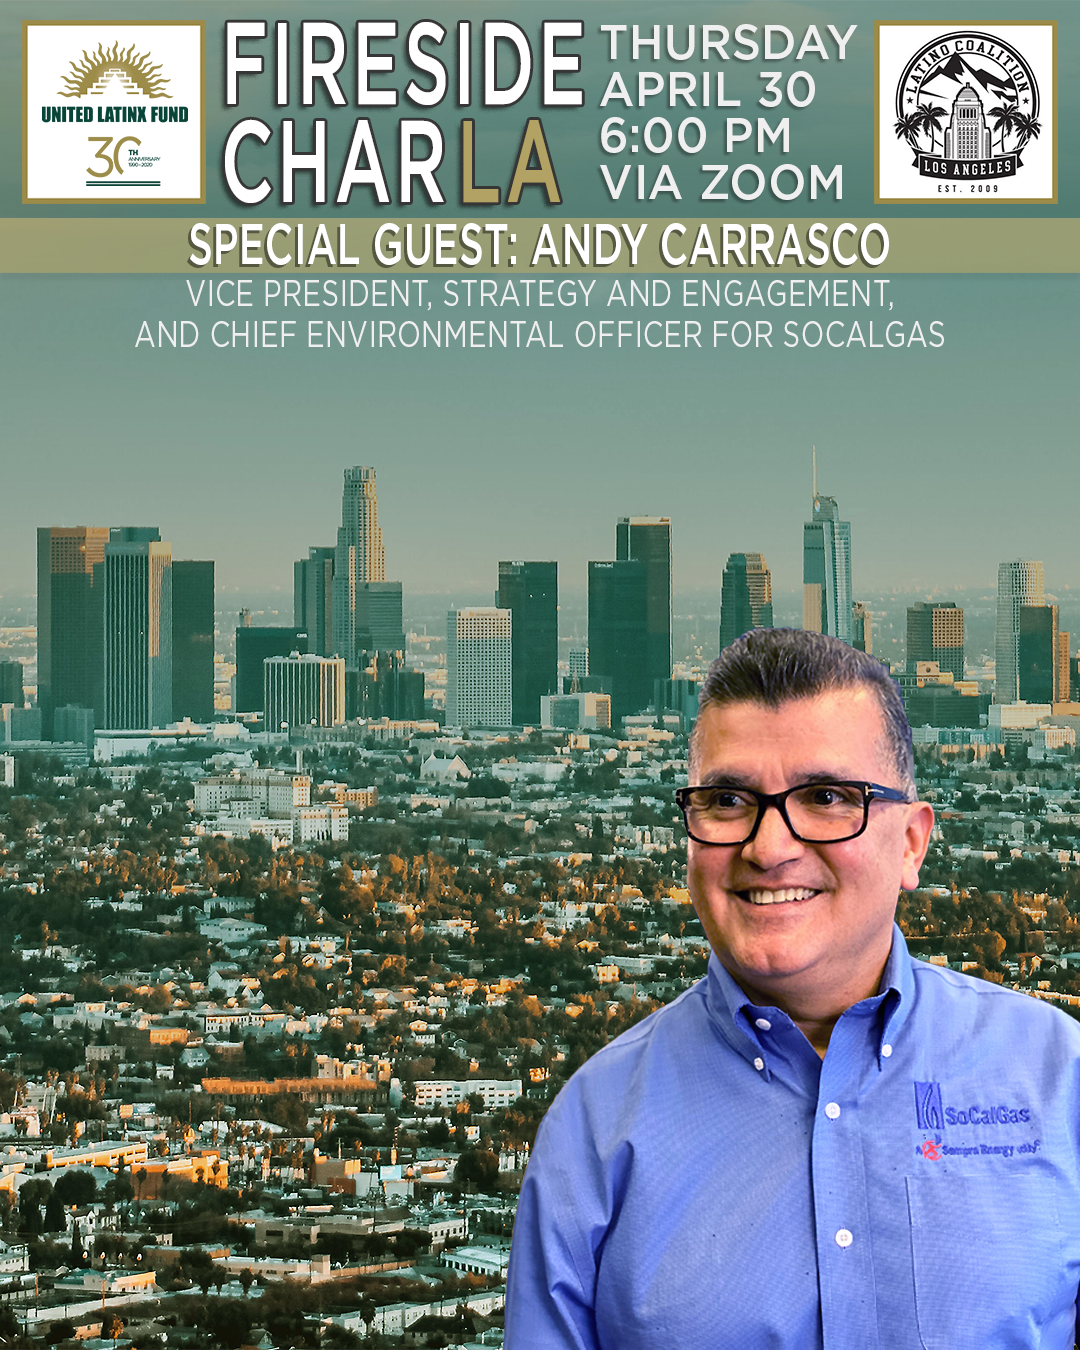 4/30/2020 Fireside CharLA - Featuring Andy Carrasco